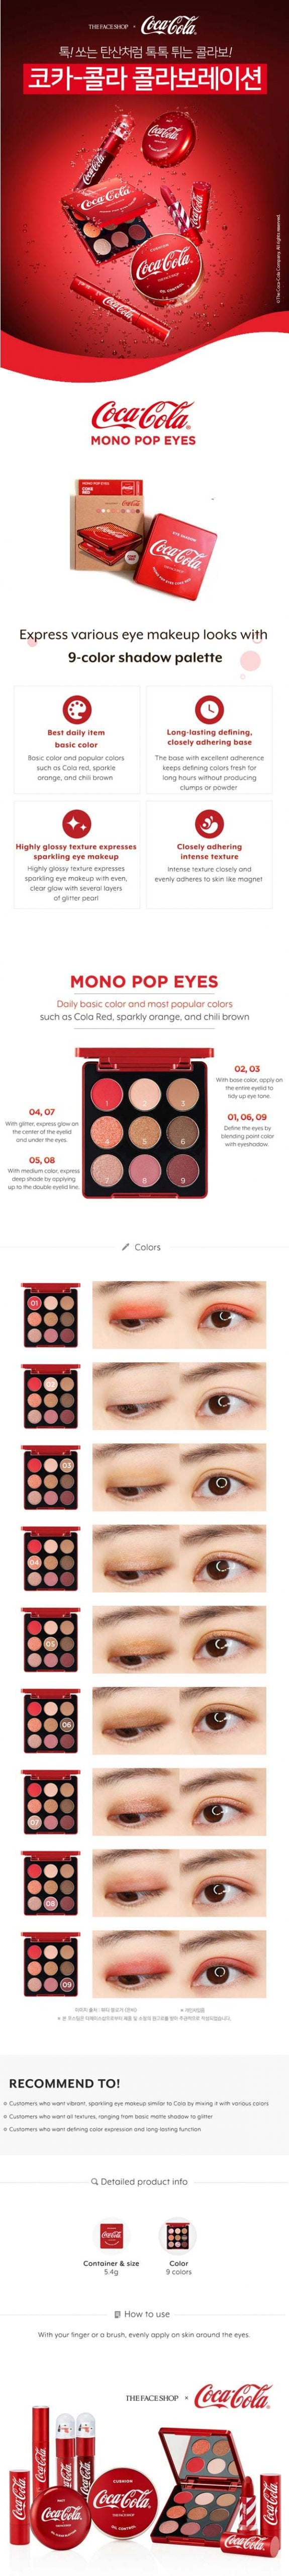 [THE FACE SHOP X COCA COLA] MONO POP EYES #COKE RED